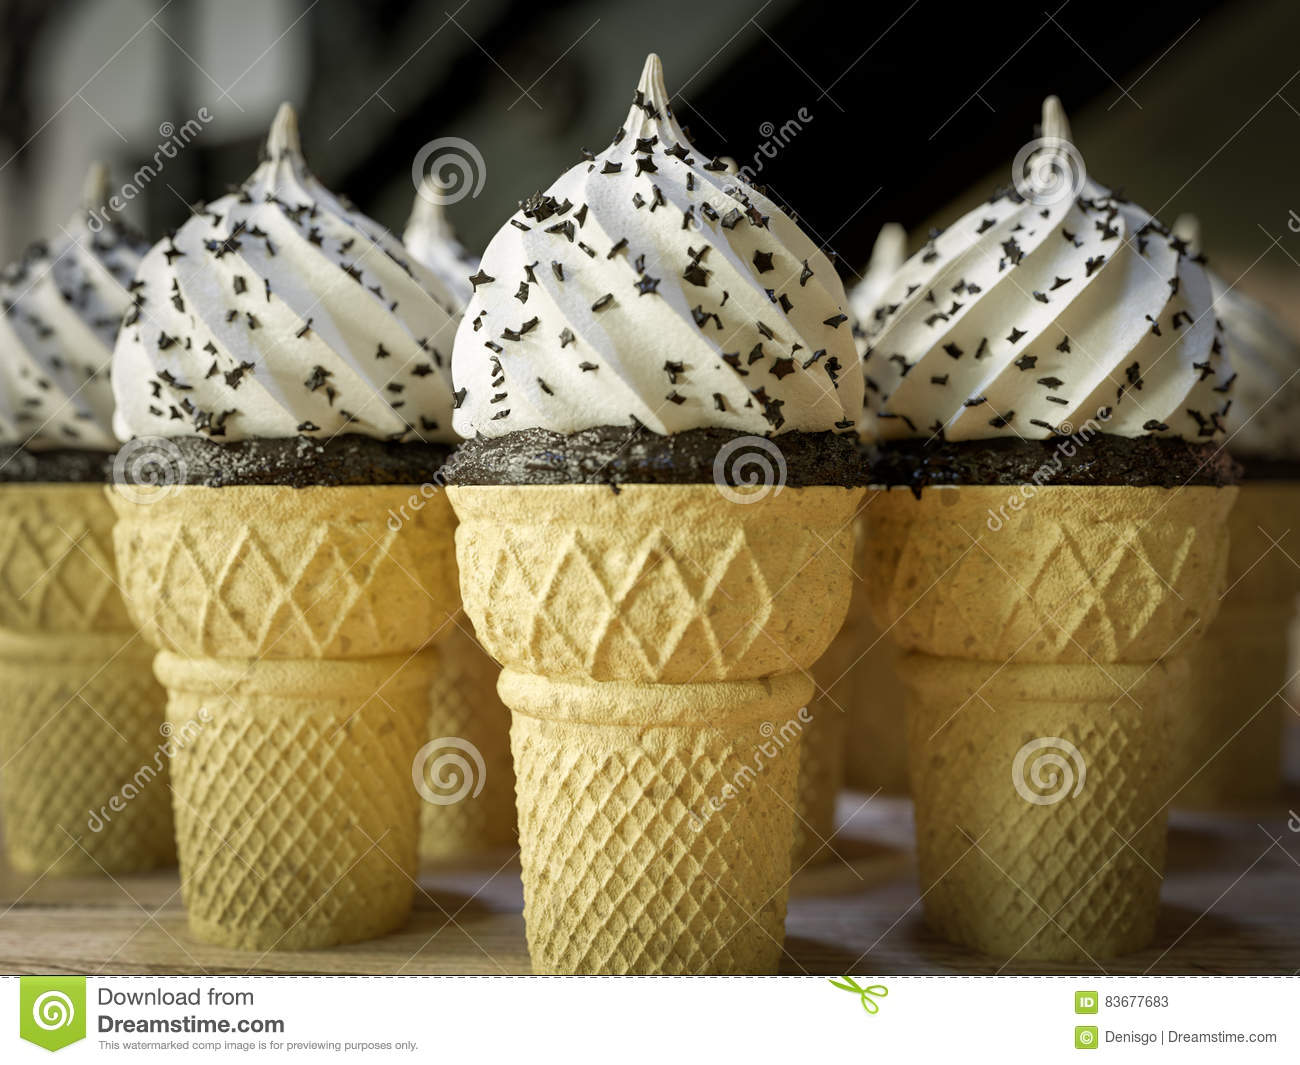 Many ice cream cones on the wooden vintage table